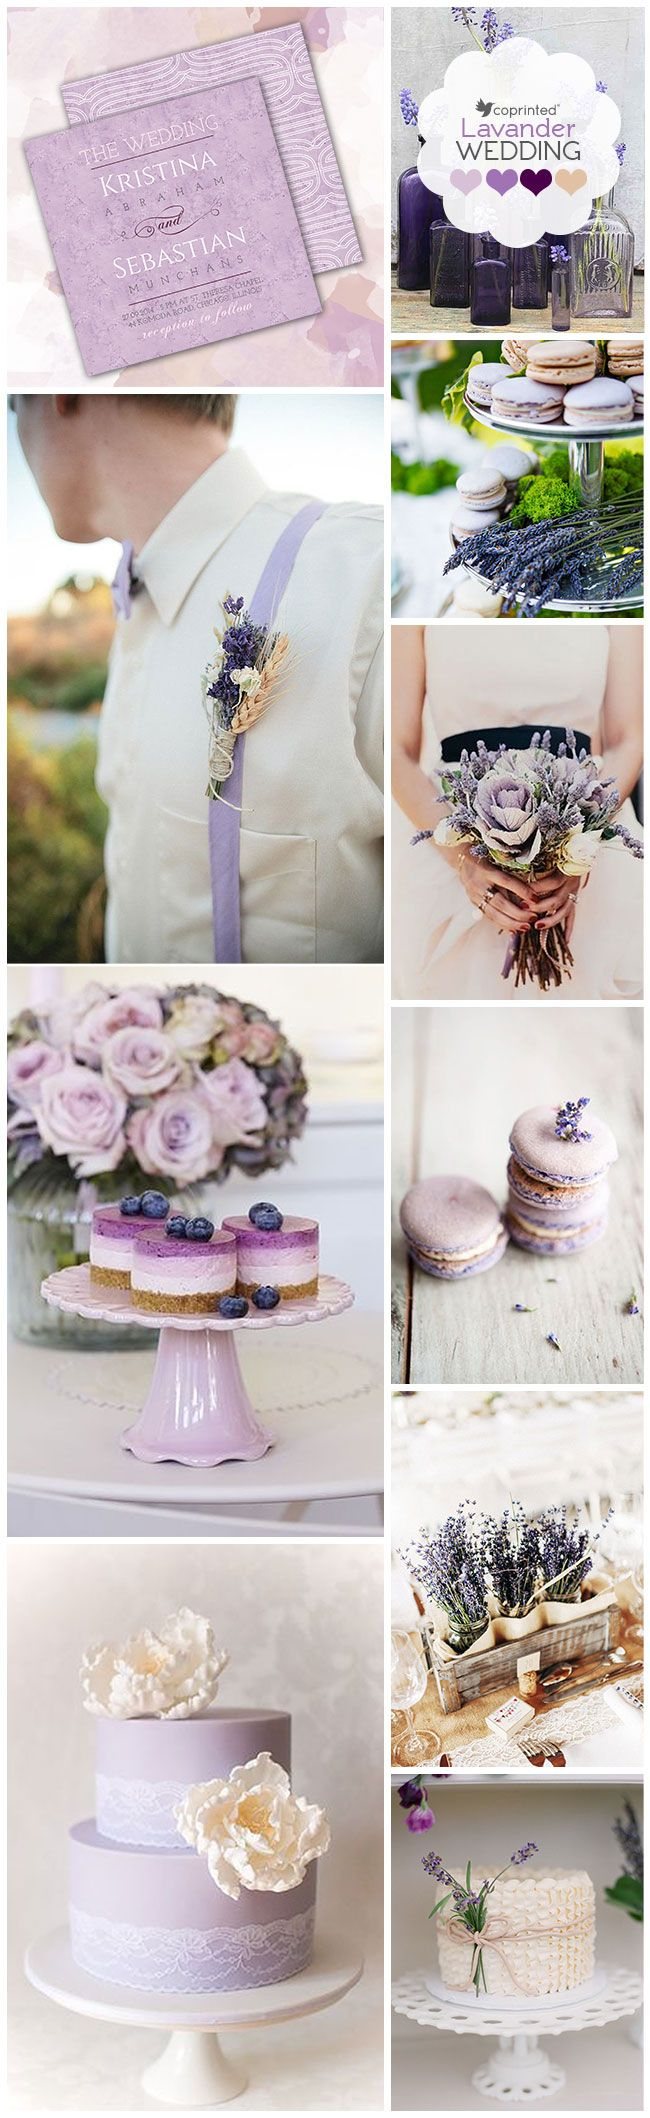 Lavender Inspiration Board:http://www.coprinted.com/blog/lavender-weddings-inspiration-board/